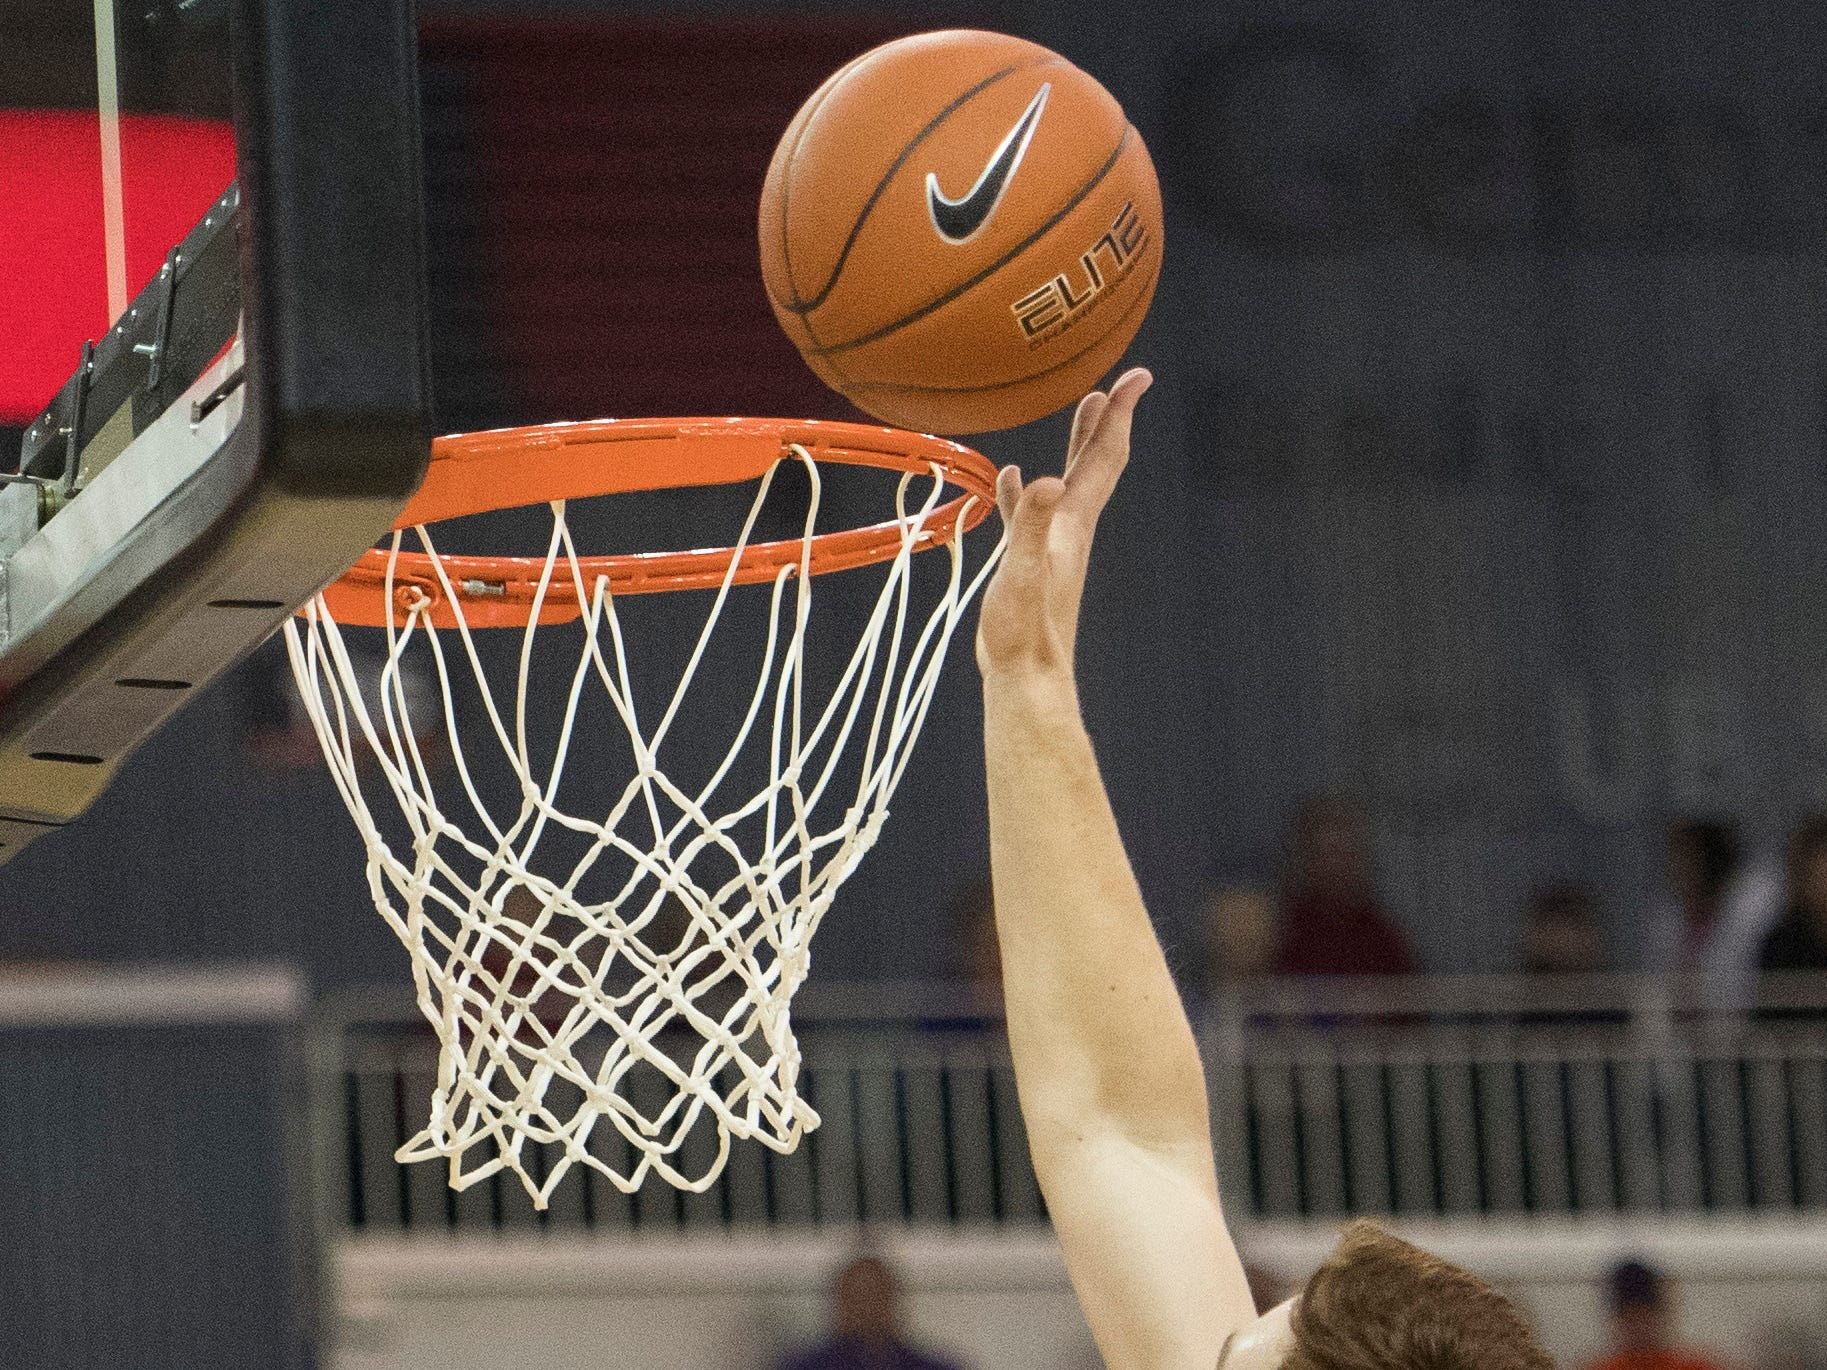 UE's Noah Frederking (30) tips the ball into the basket  during the UE vs Wyoming game at the Ford Center Wednesday, Nov. 28, 2018. UE won 86-76.